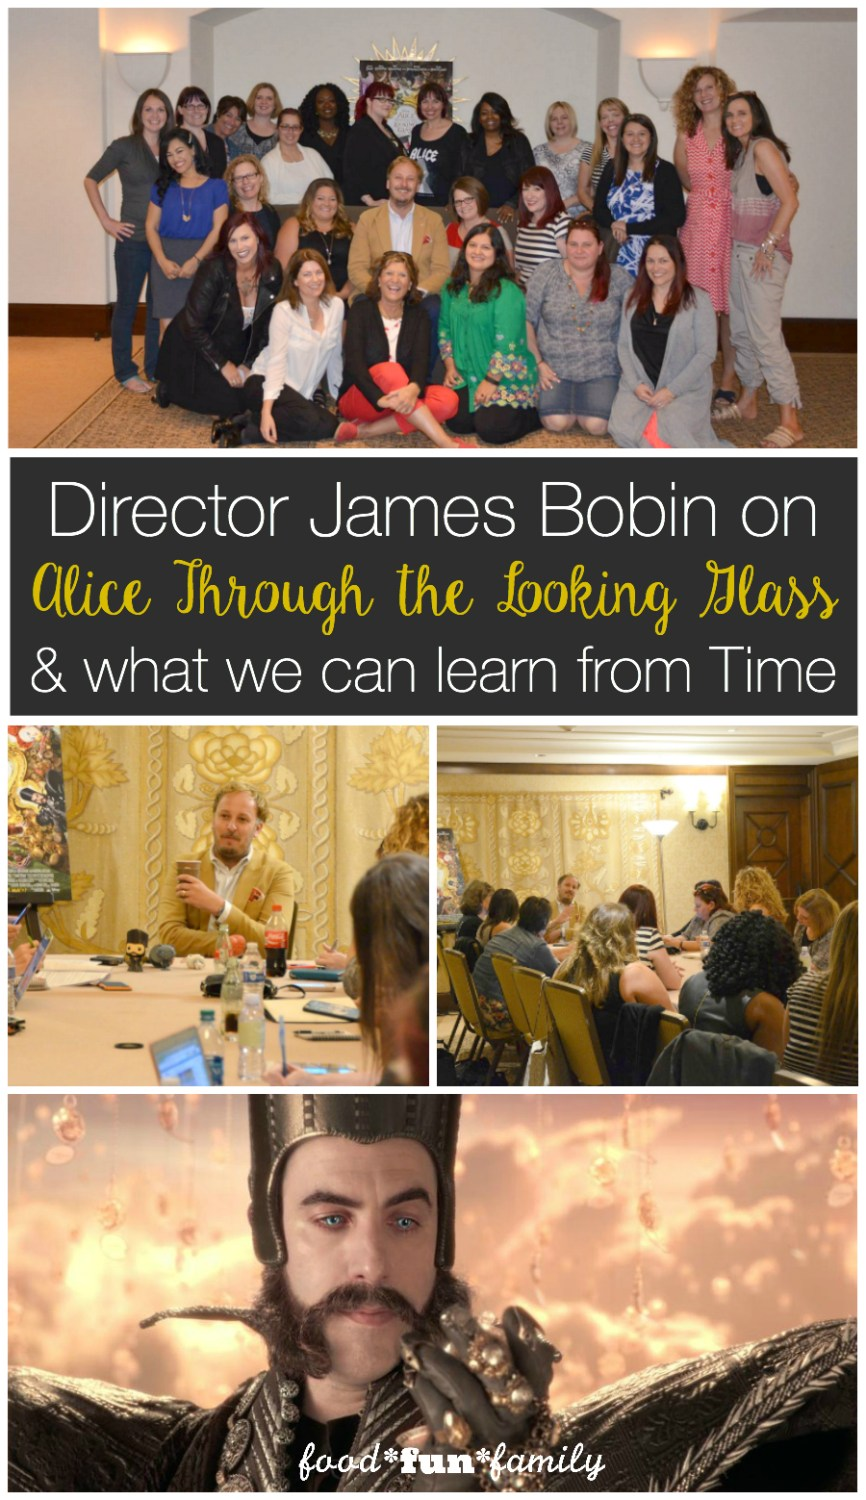 Director James Bobin on Alice Through the Looking Glass and what we can learn from Time